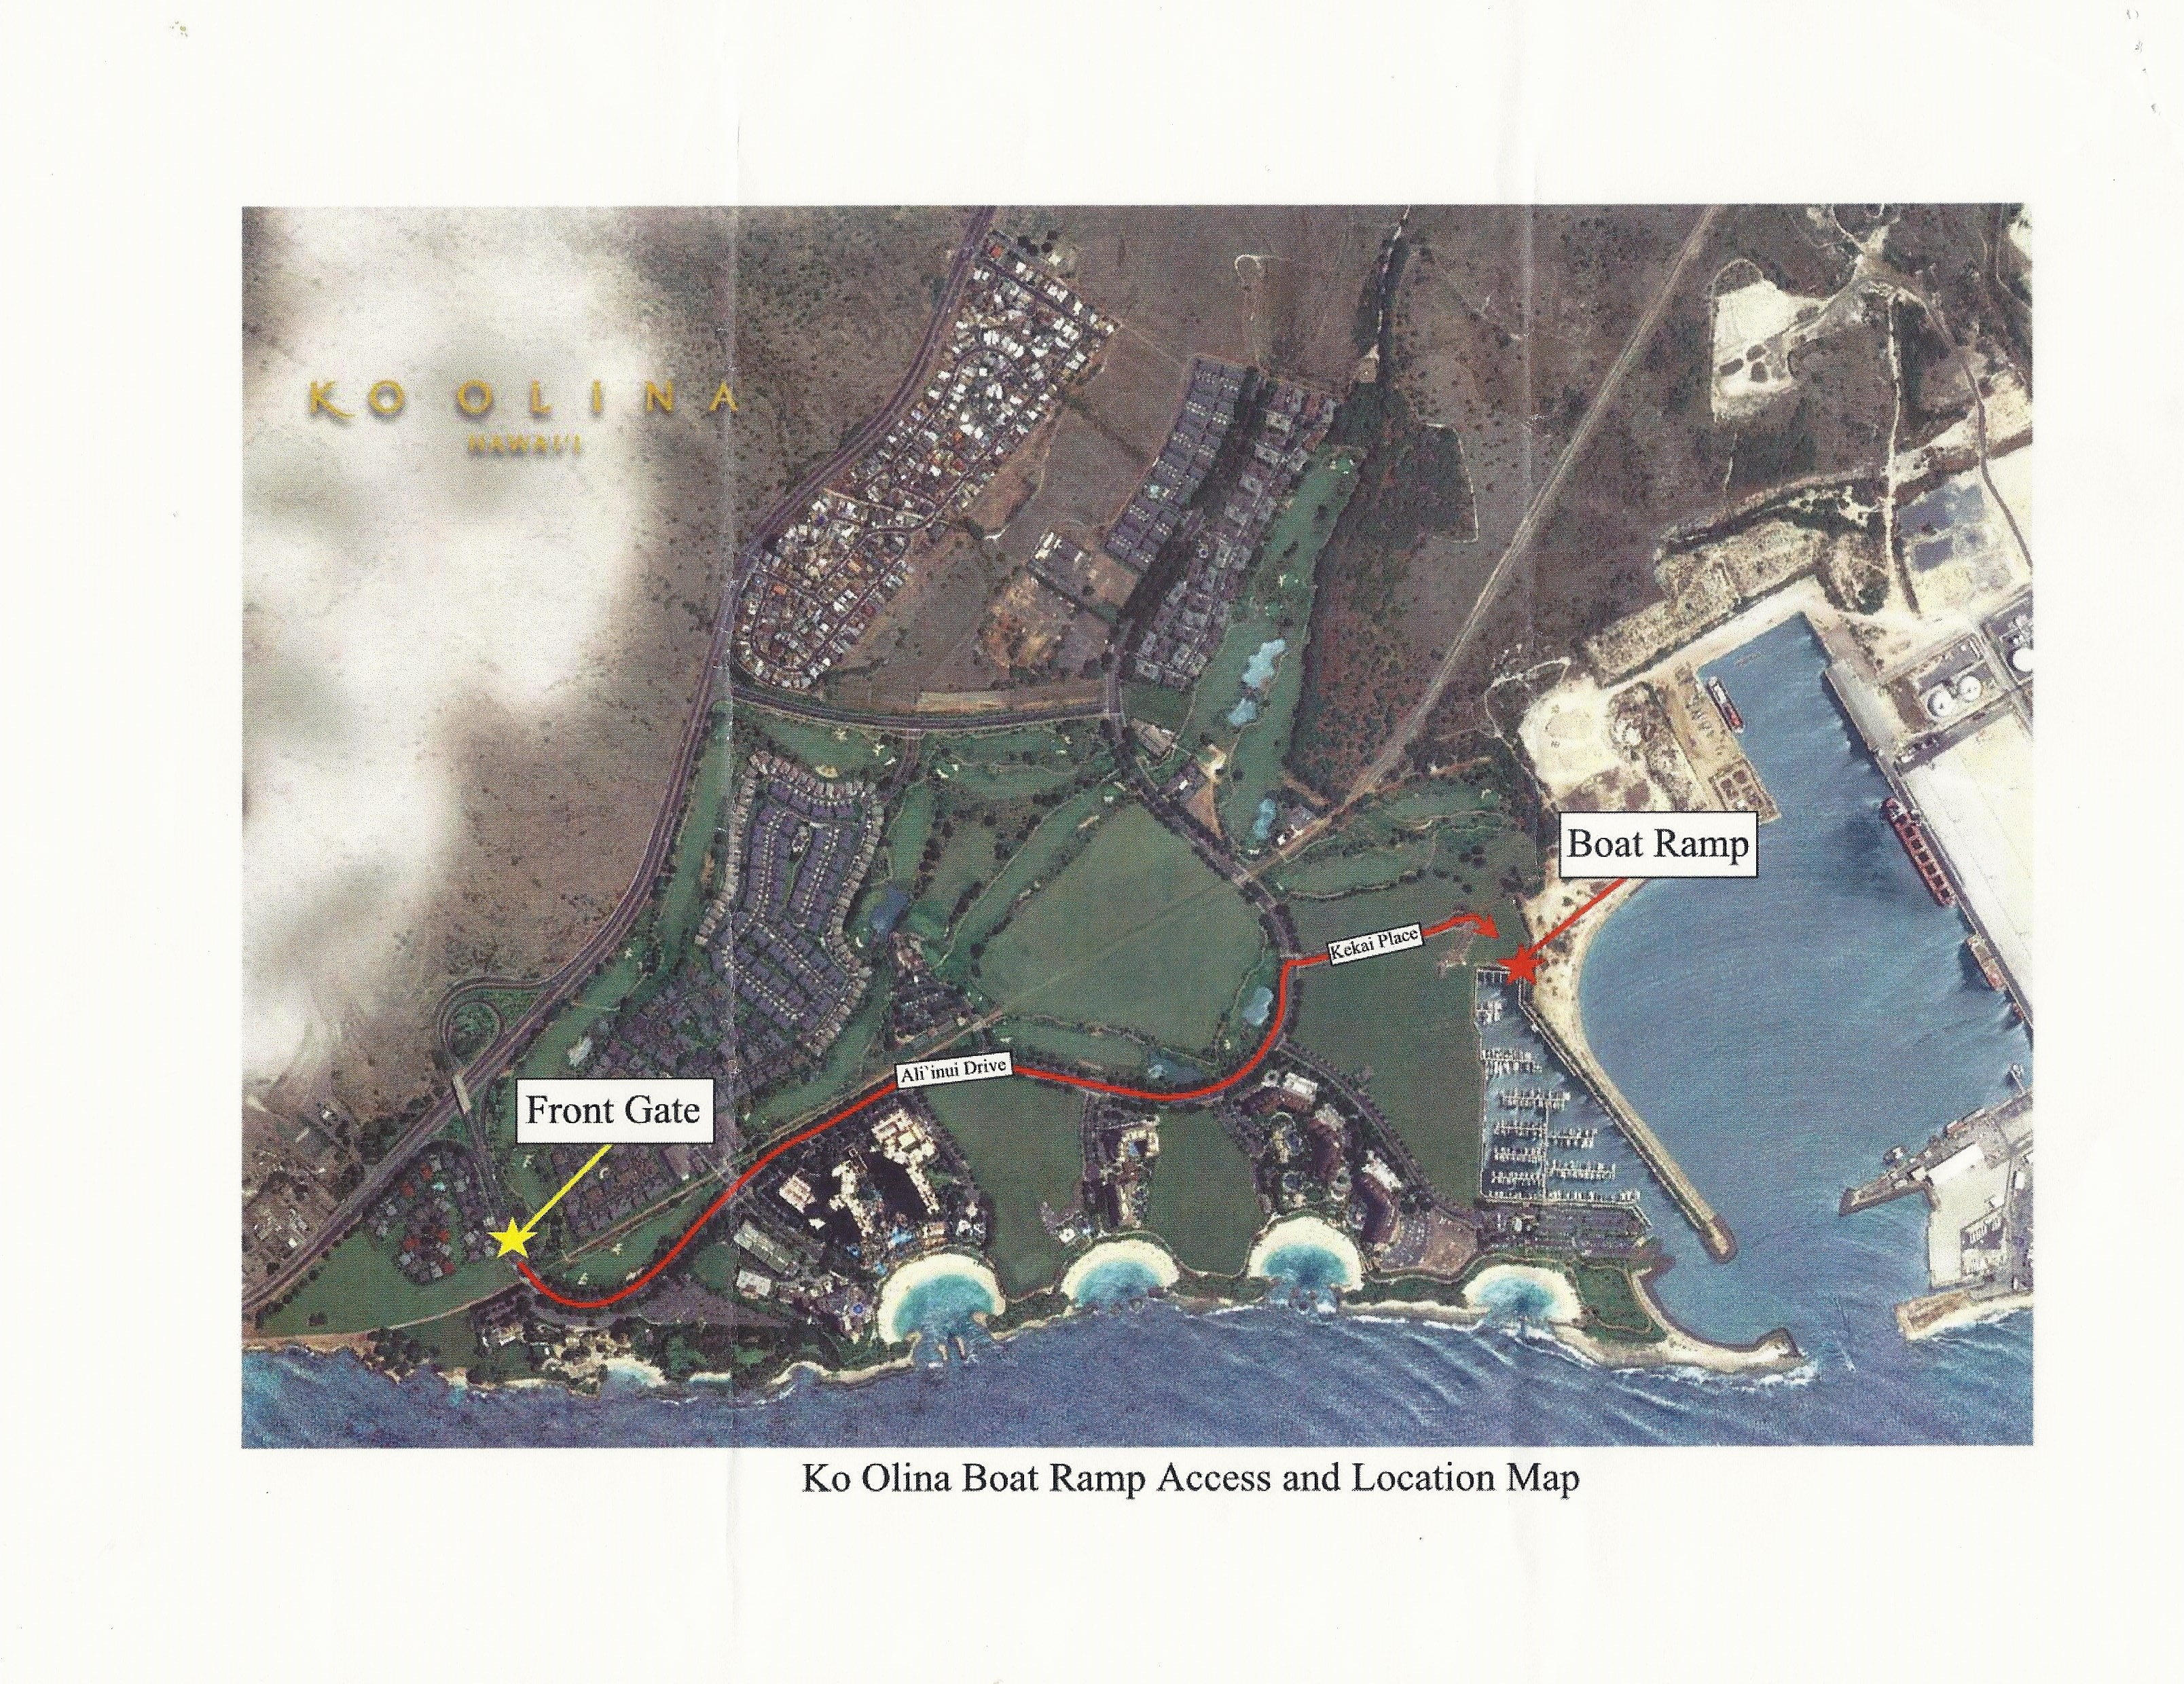 THE LATEST ON THE KO OLINA SMALL BOAT RAMP